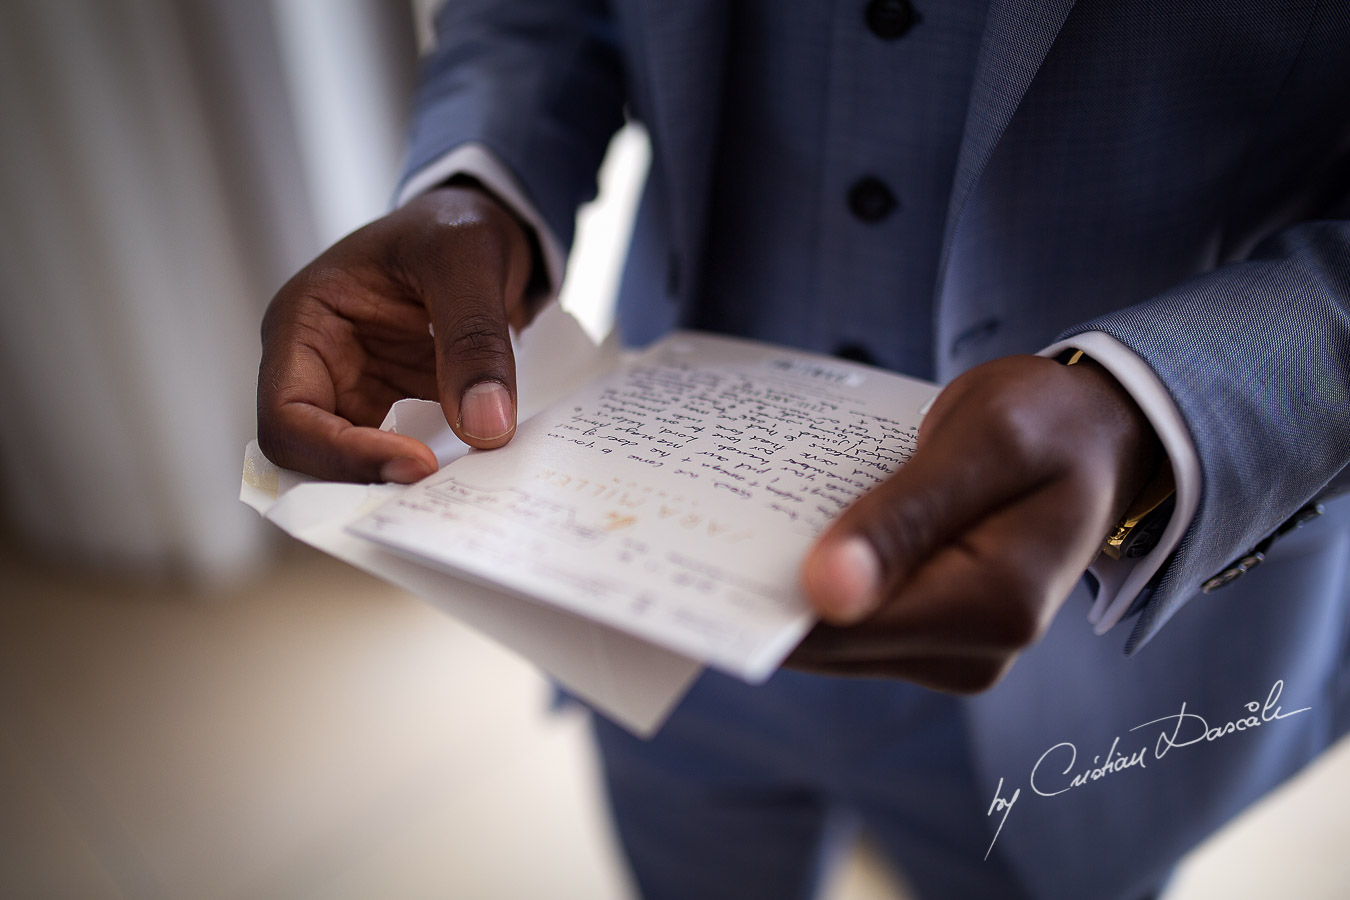 Letter from bride to the groom phootgraphed at a wedding at Minthis Hills in Cyprus, by Cristian Dascalu.